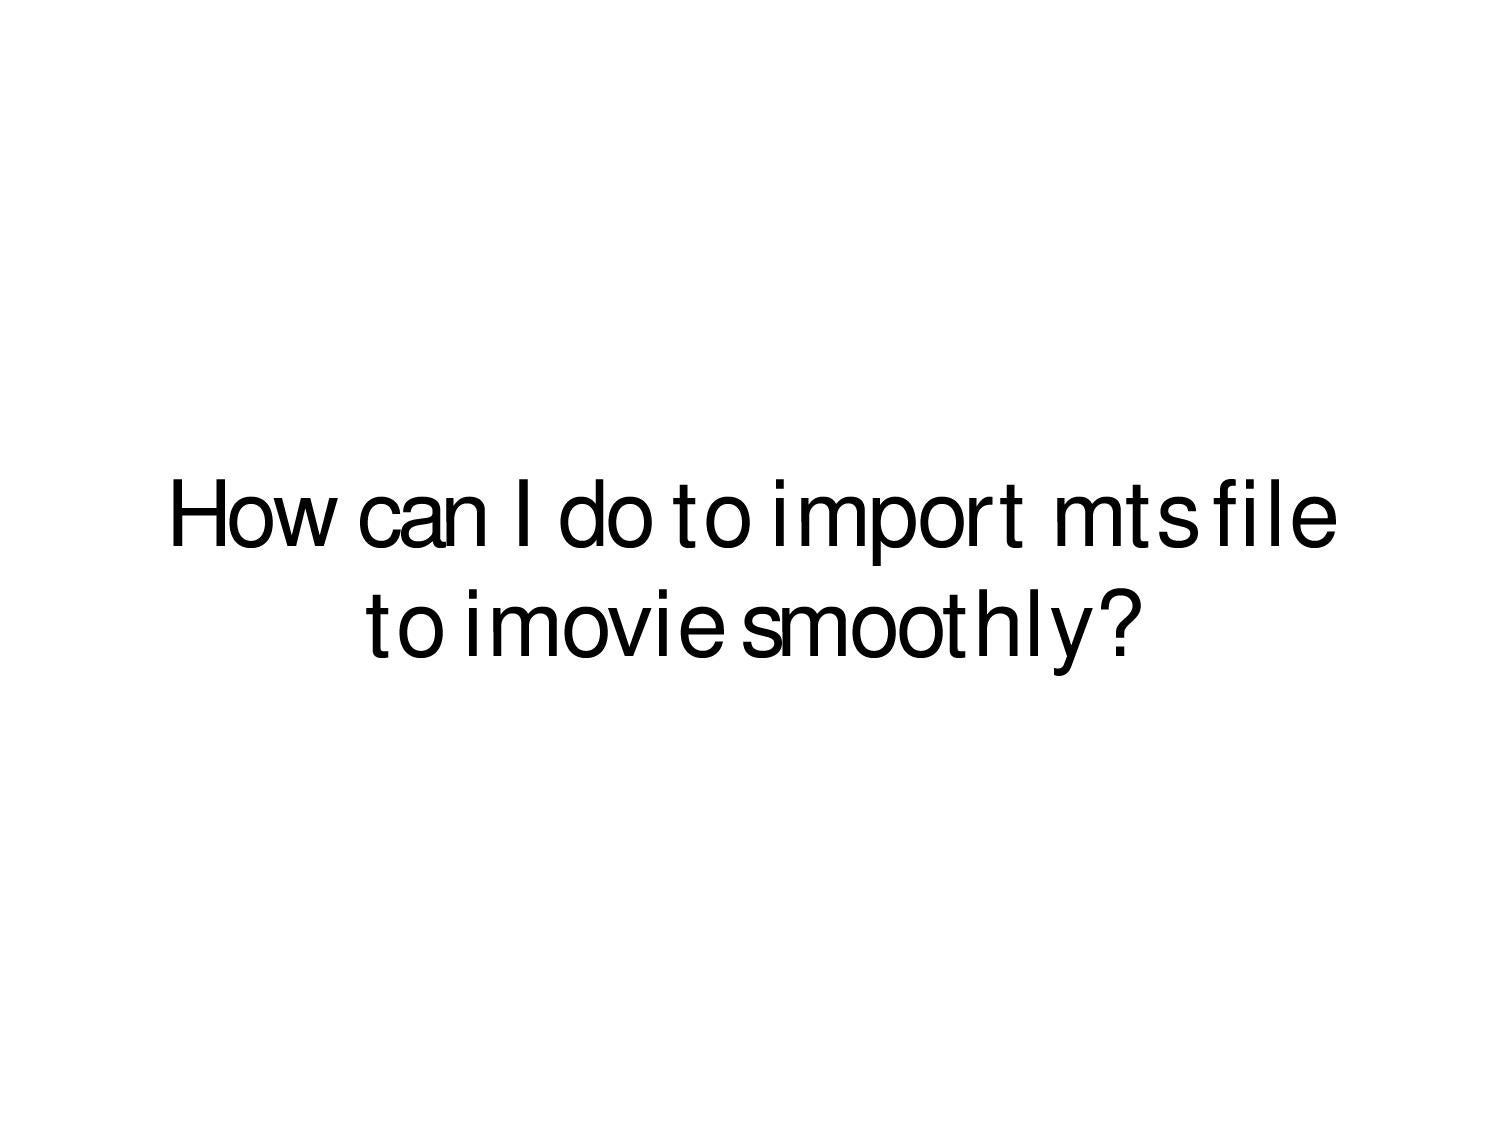 How can I do to import mts file to imovie smoothly? by